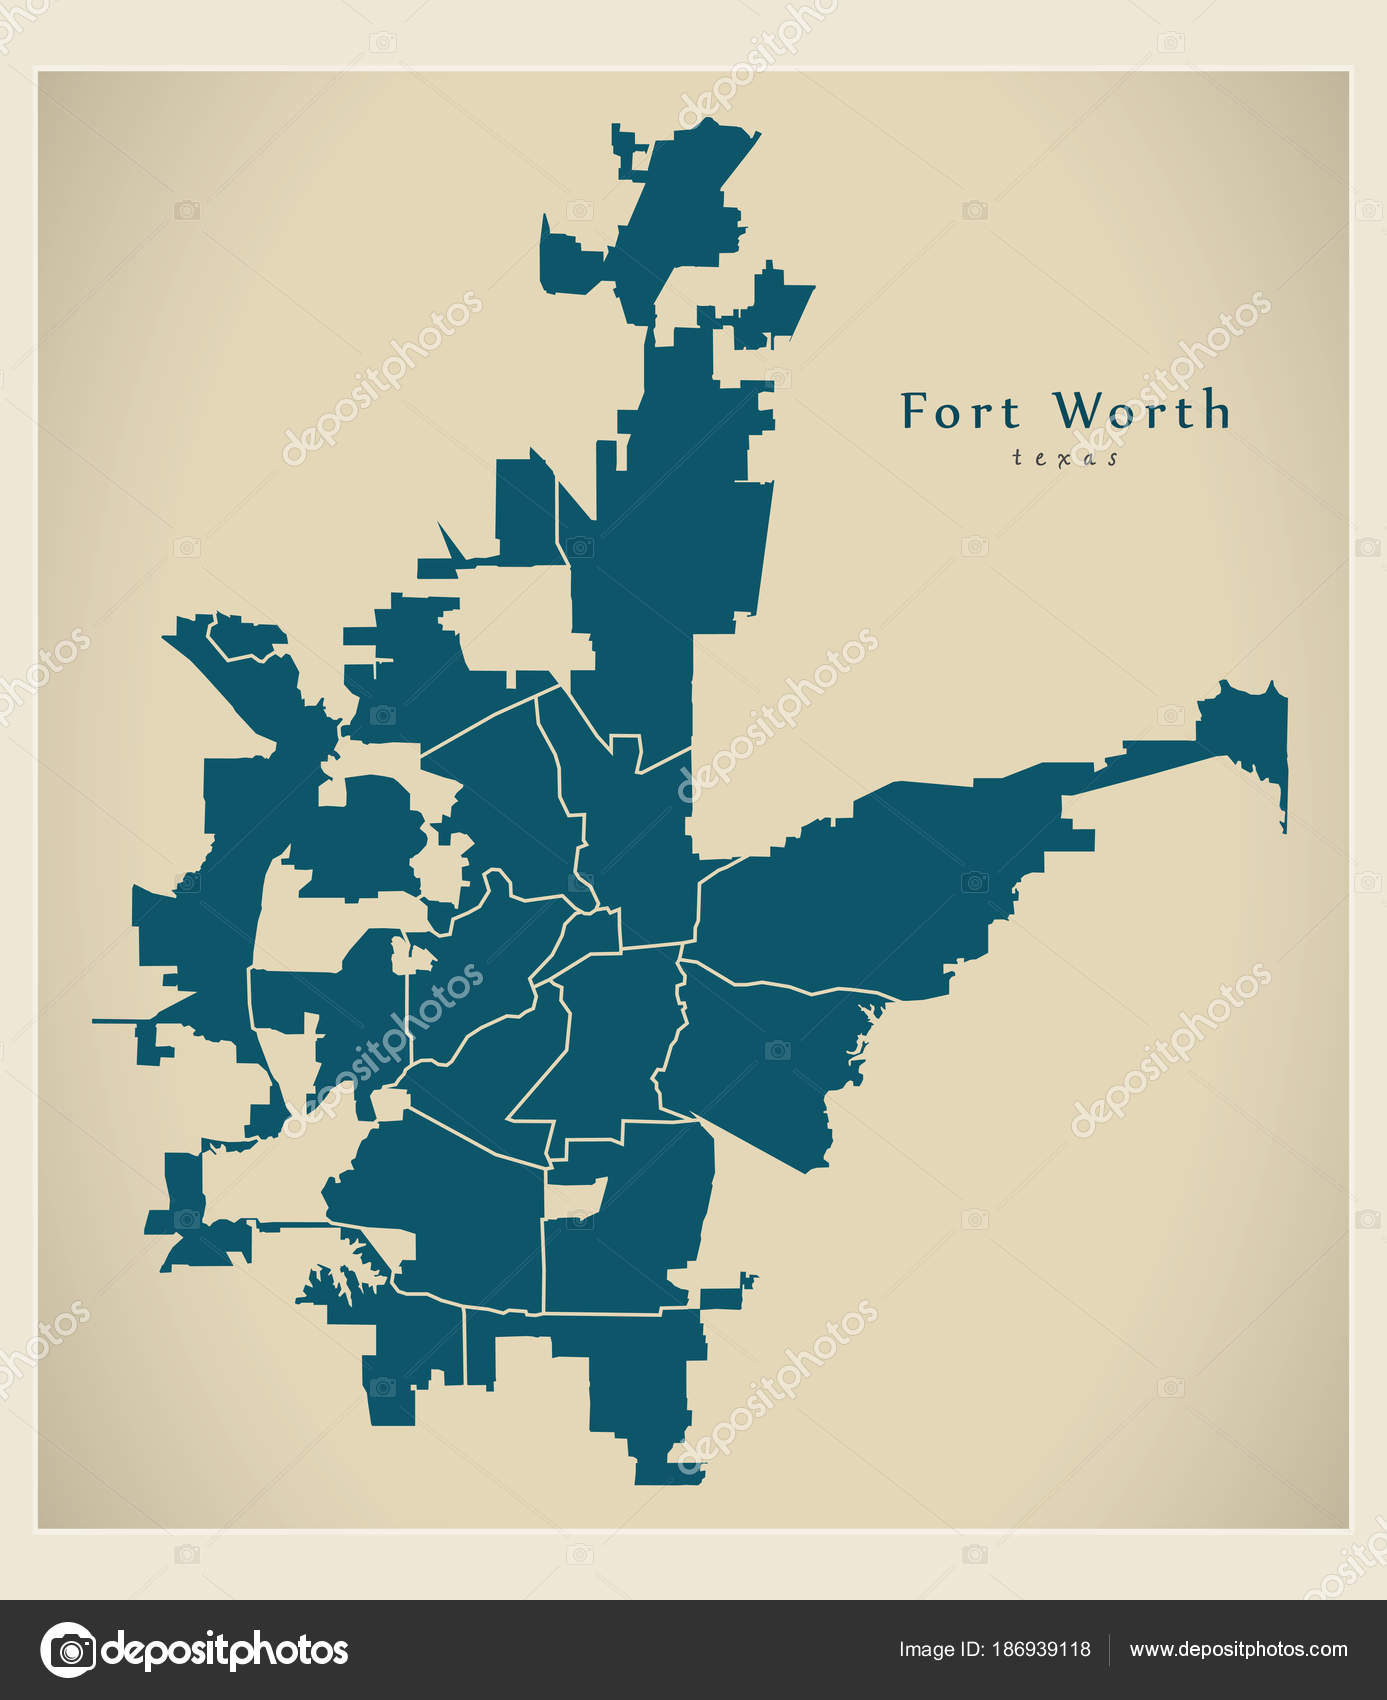 Moderne City Map - Fort Worth Texas Stadt der Usa Nachbarschaften ...